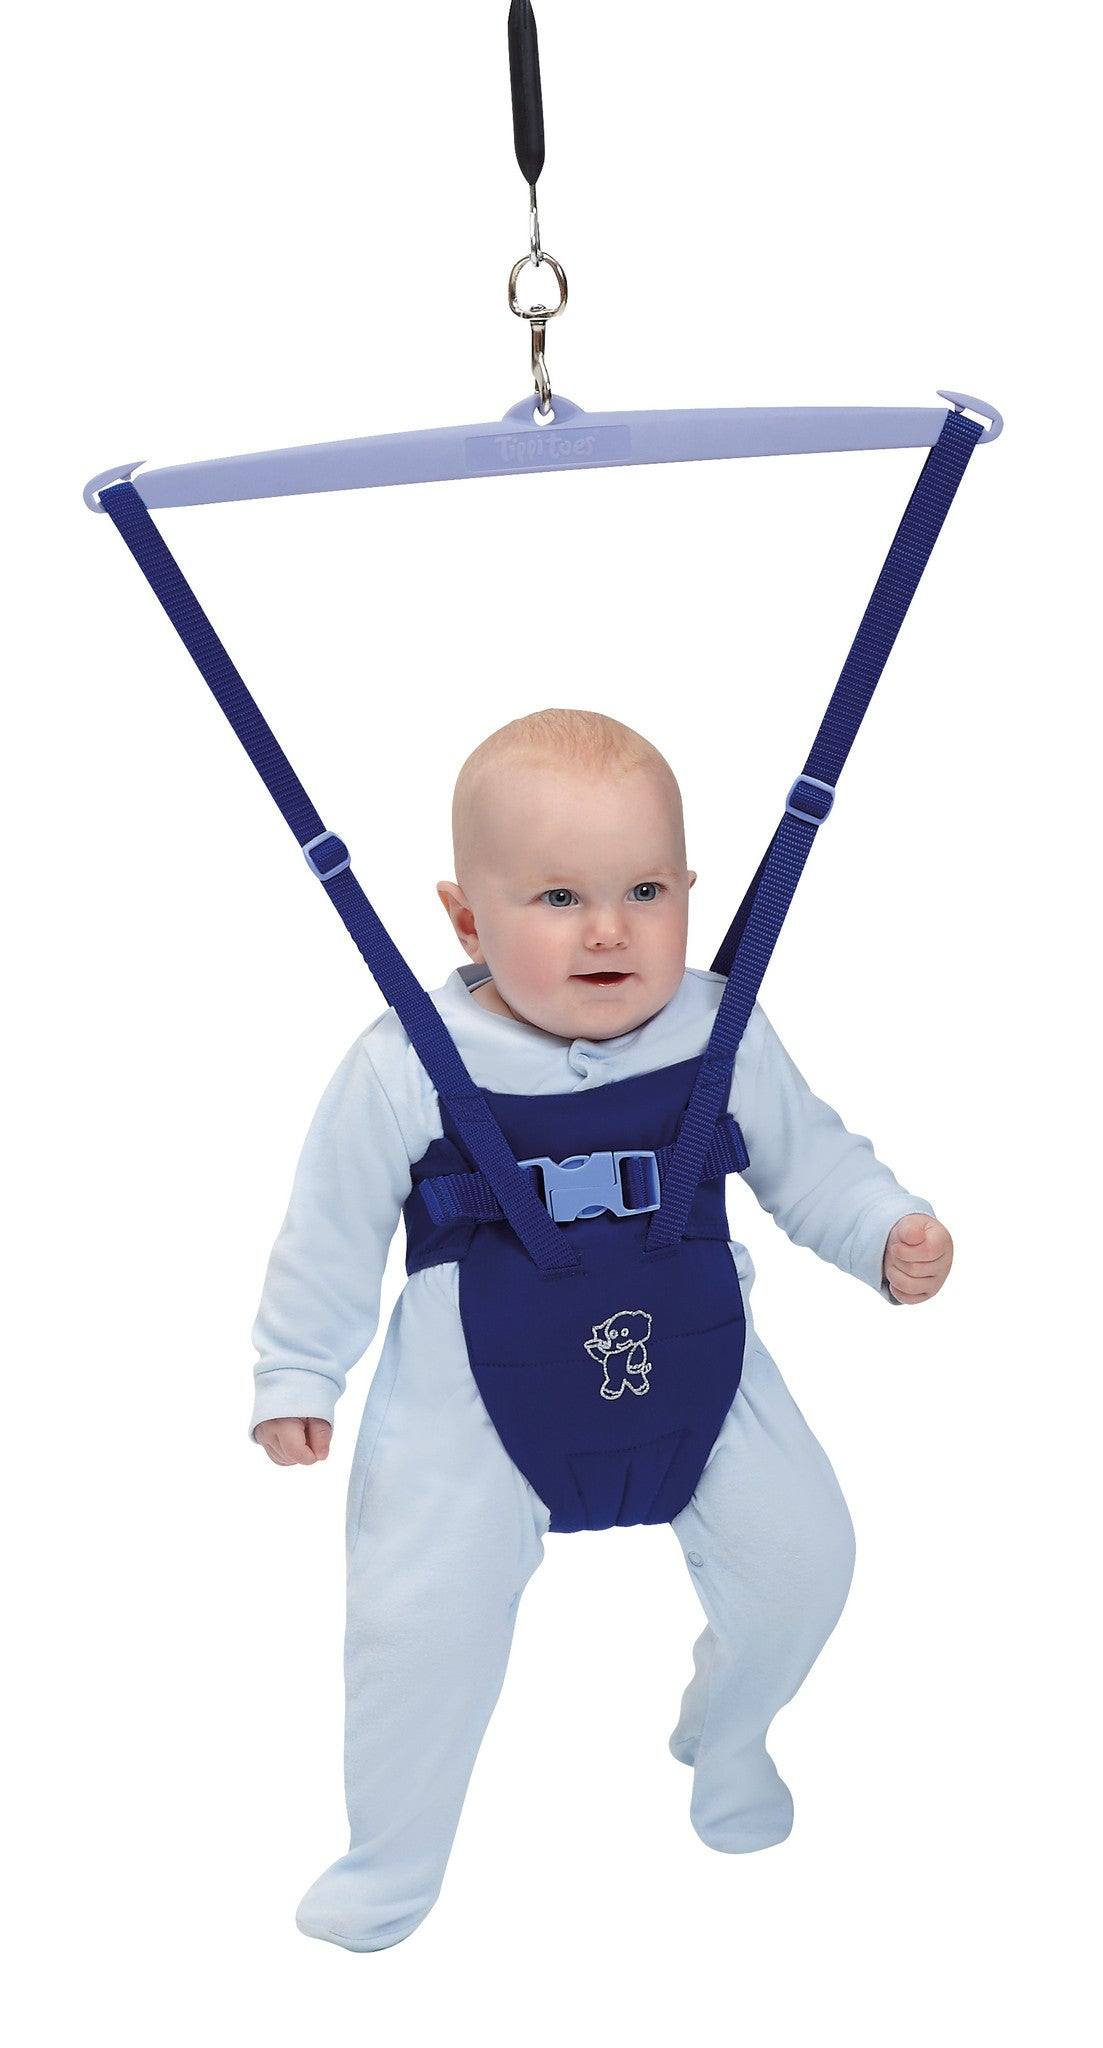 Tippitoes Baby Bouncer - Blue - Tippitoes Development